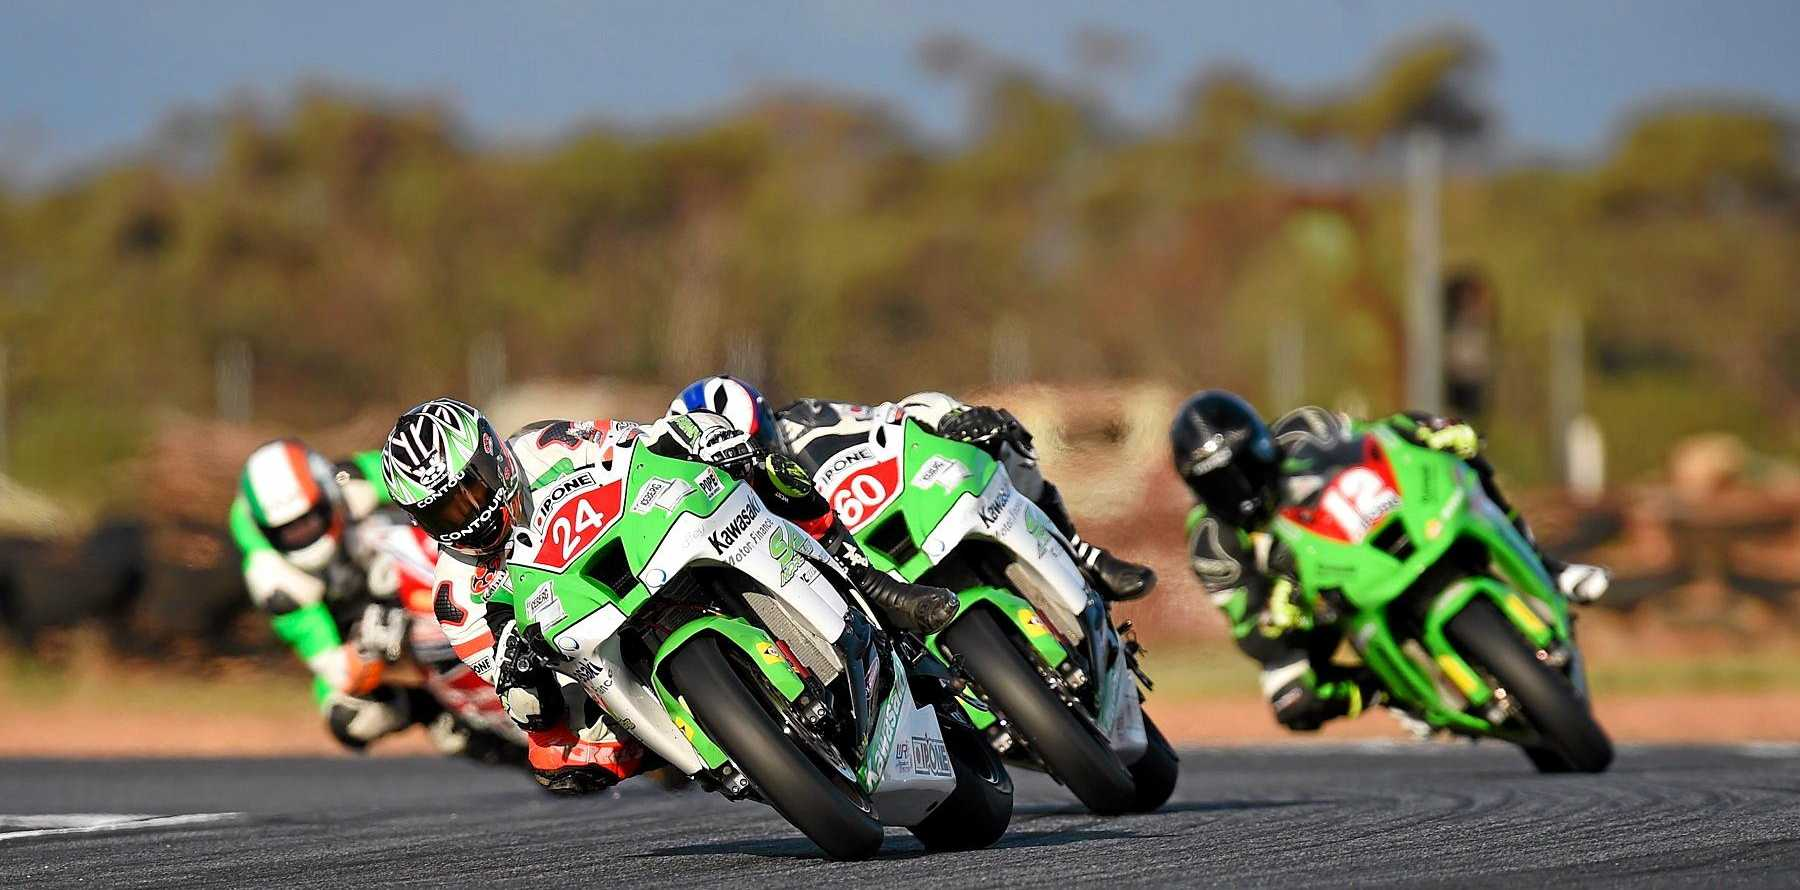 Superbike rider Robbie Bugden (number 24) leads the field in an Australasian Superbike Championship race.